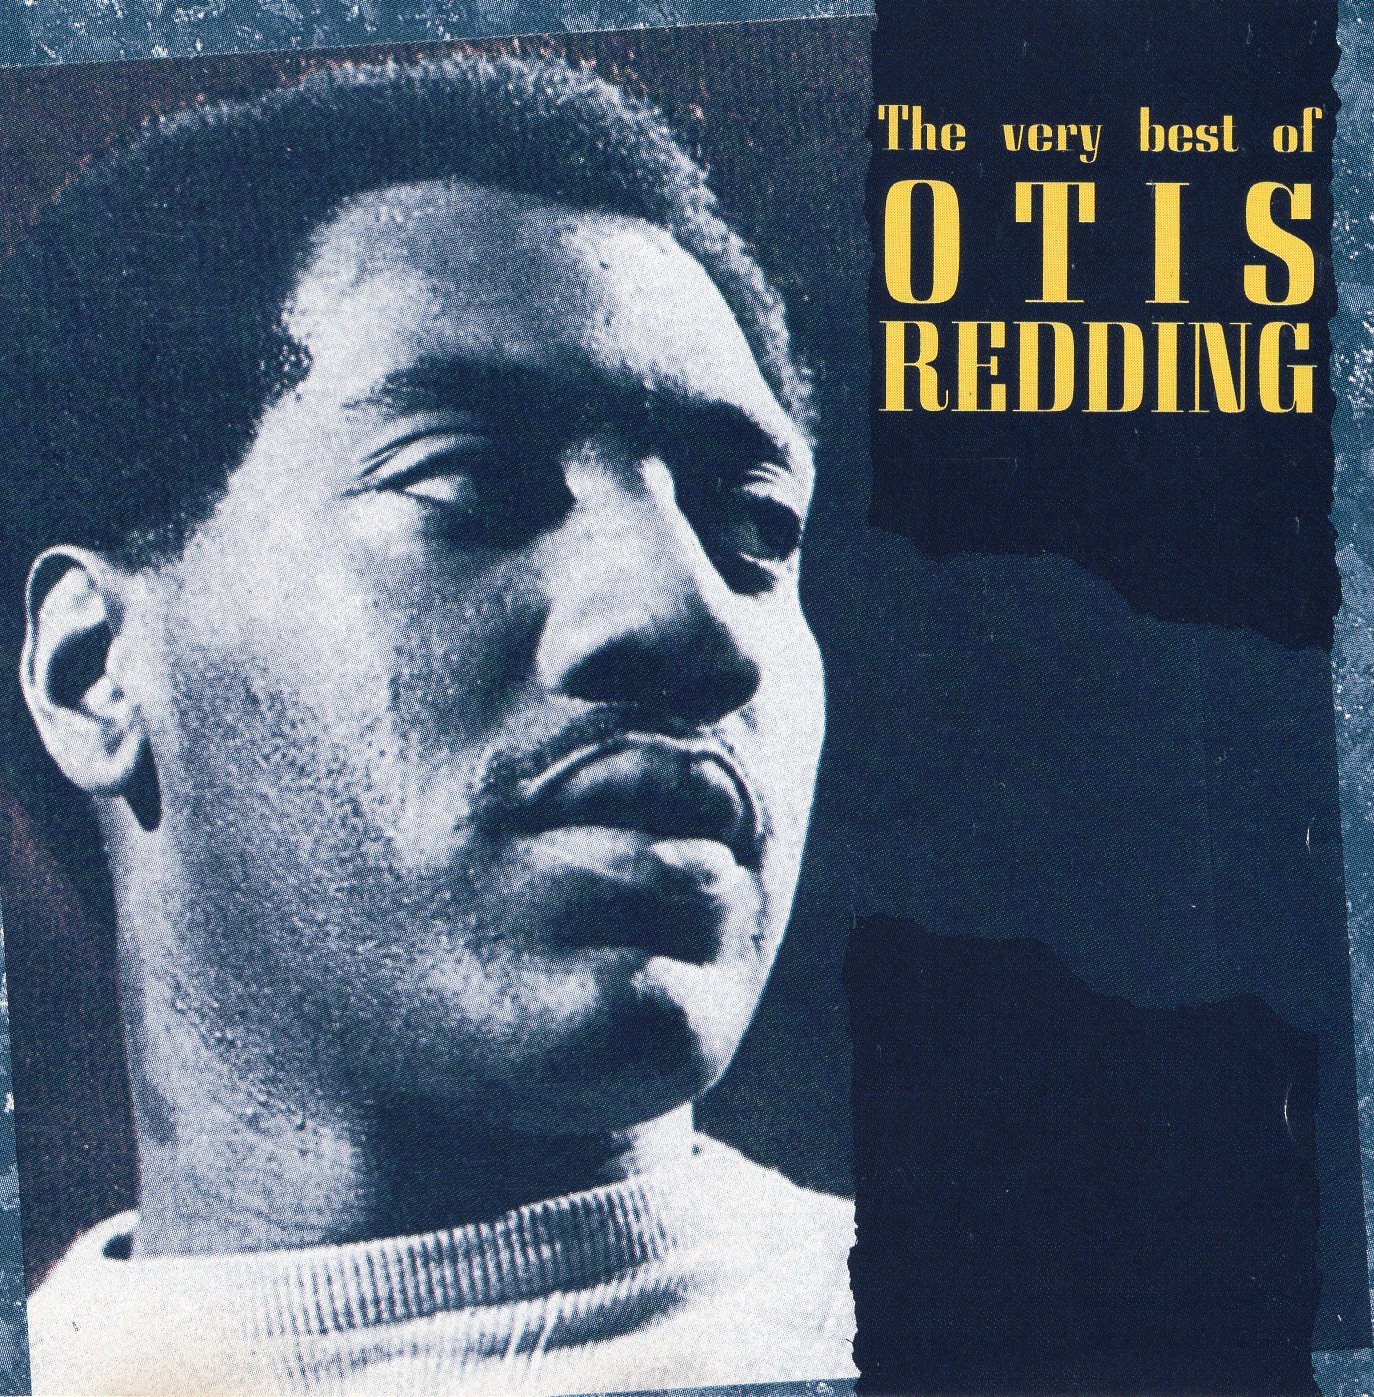 """The Very Best of Otis Redding"" Otis Redding"